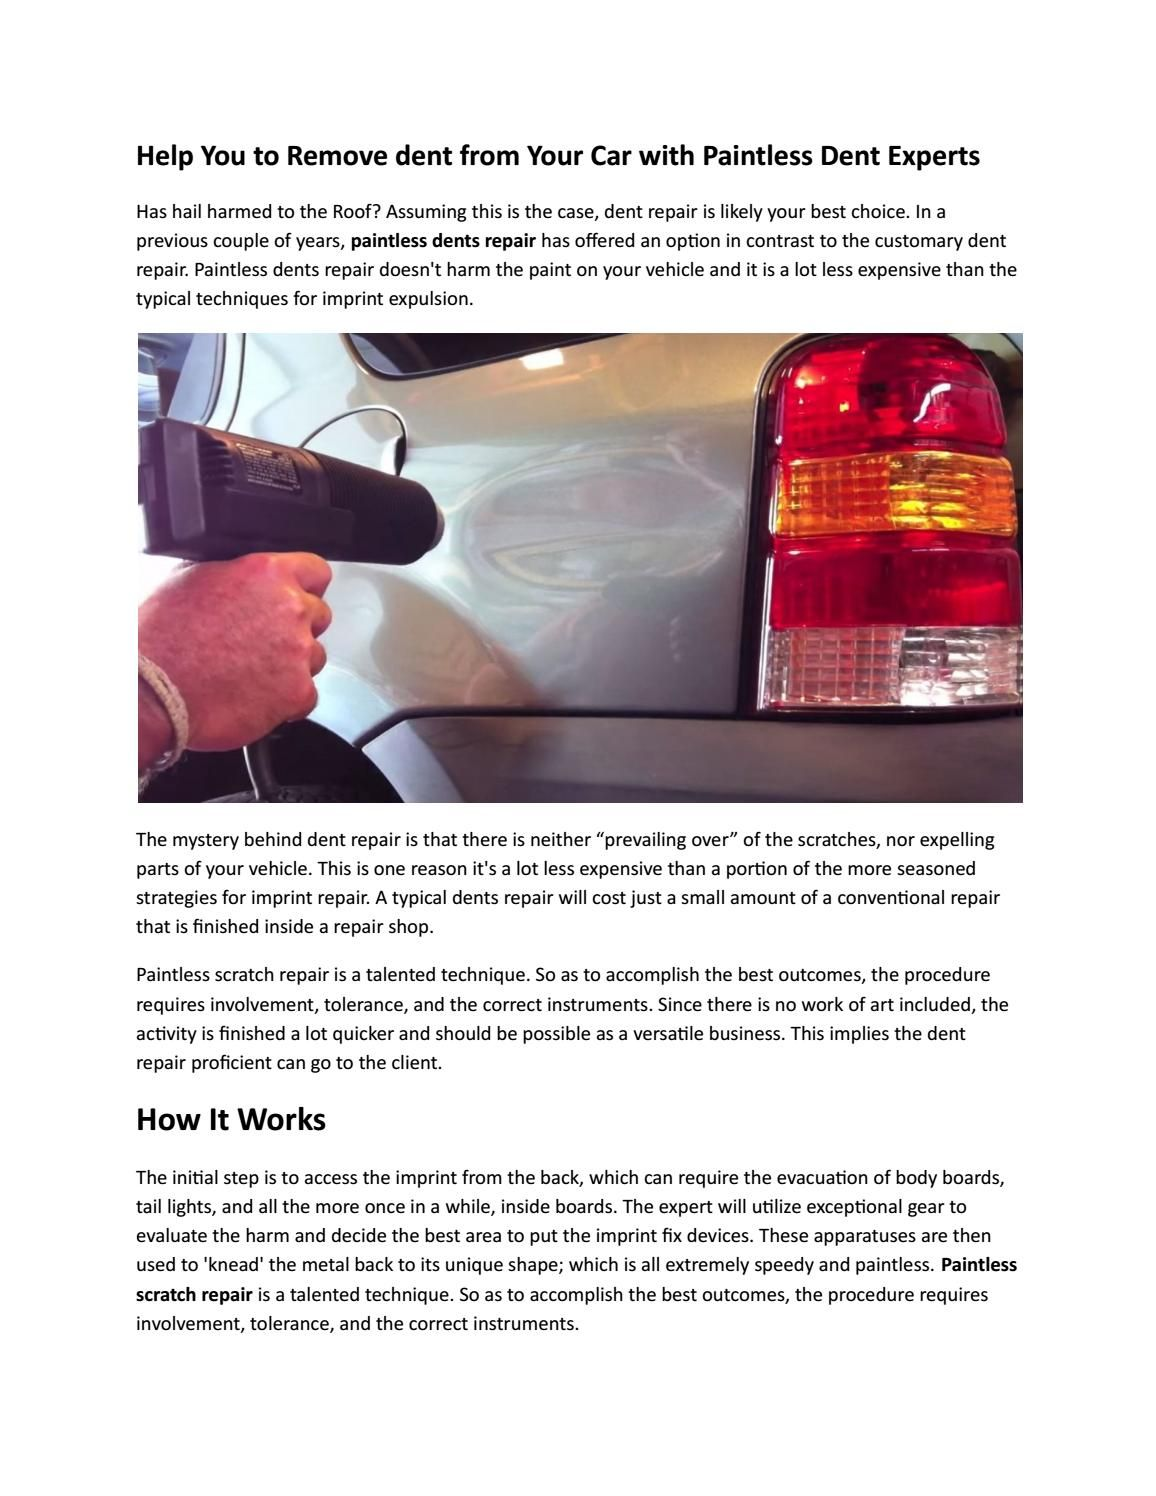 Help You To Remove Dent From Your Car With Paintless Dent Experts Dent Repair How To Remove Car Dent Repair